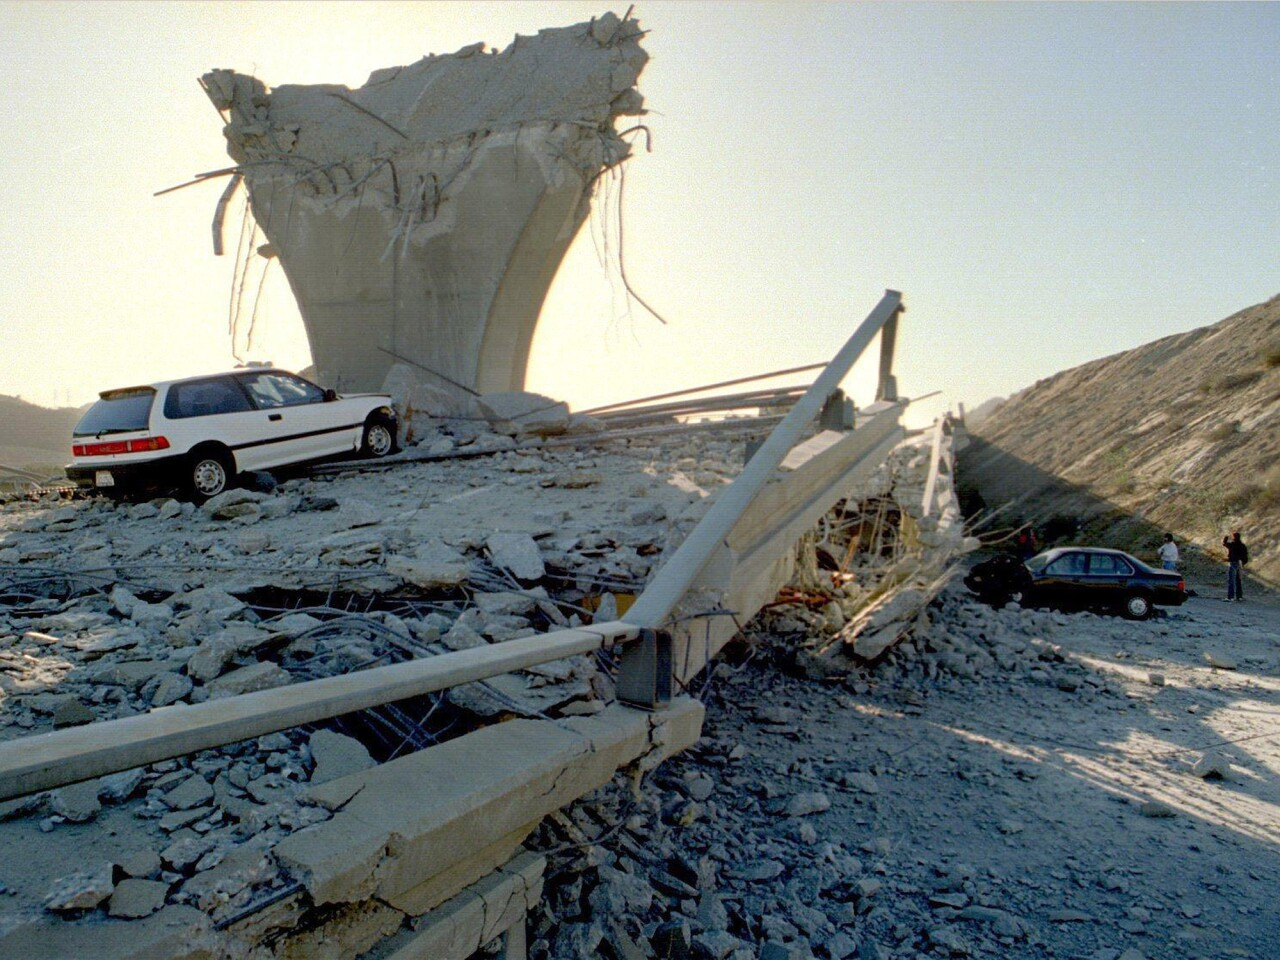 Only rubble remains at the junction of the 5 and 14 freeways following the 1994 Northridge earthquake.